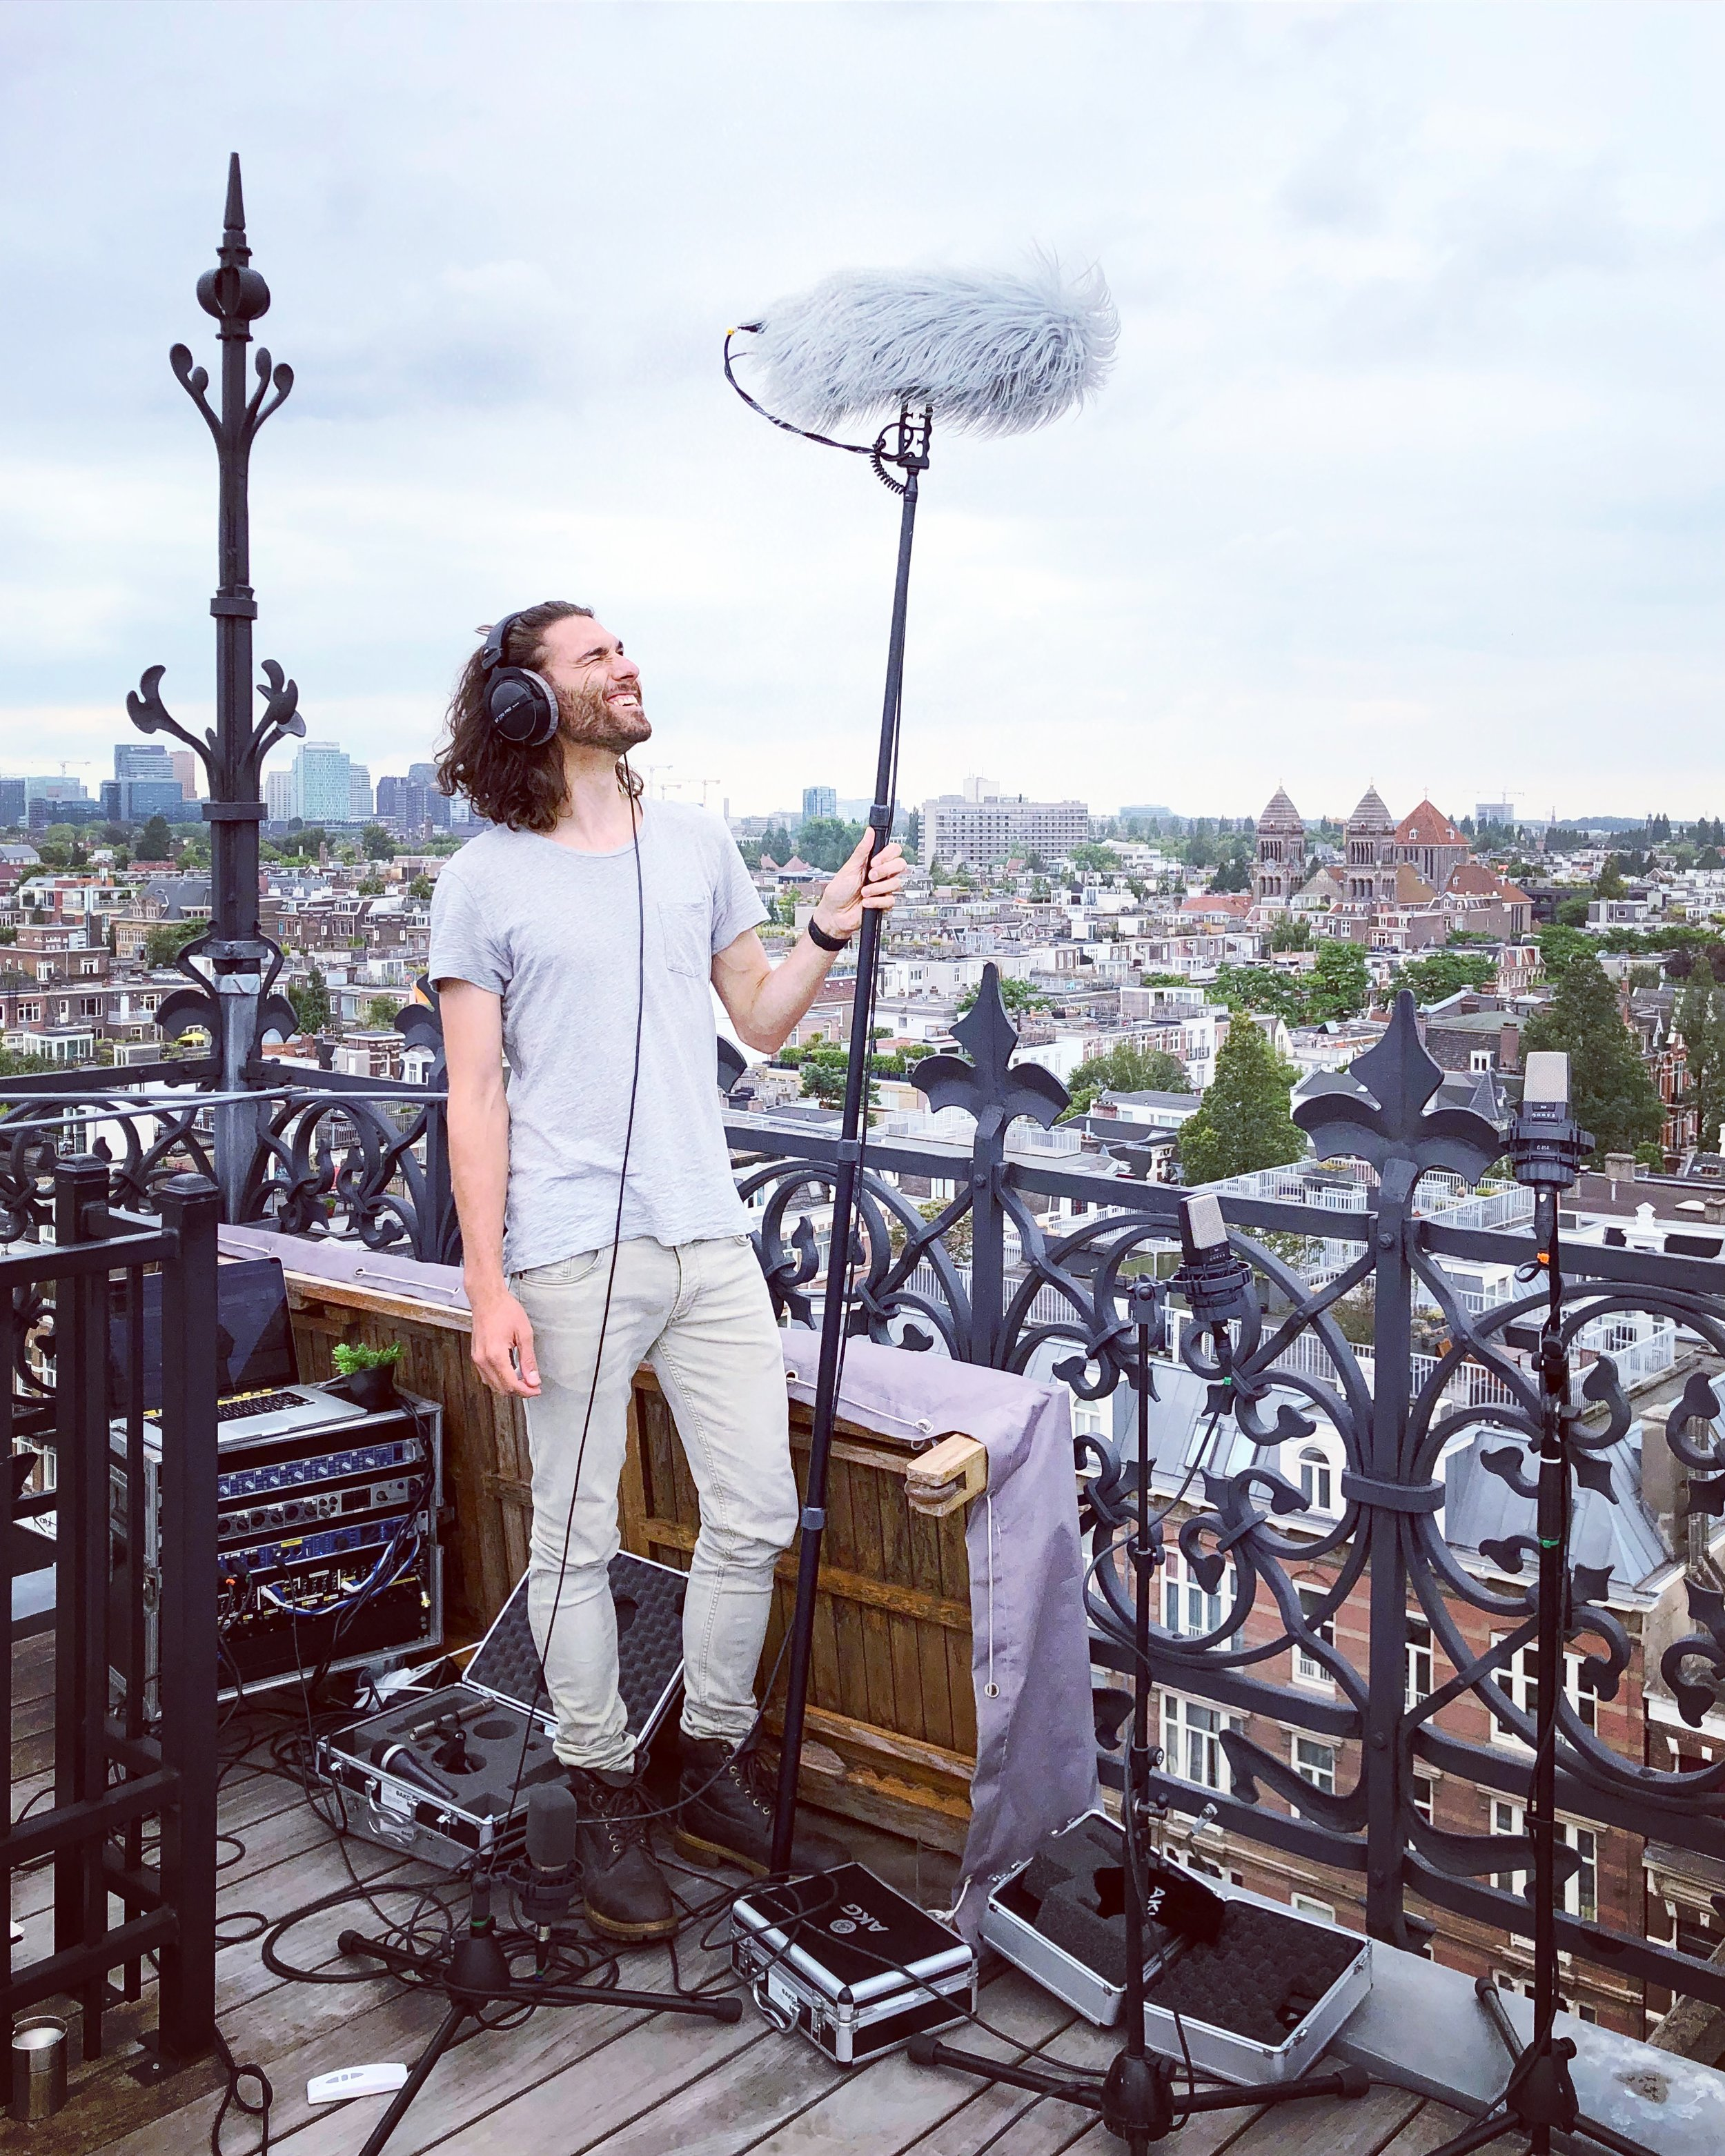 Rooftop recording session with the mobile recording set - at Het Conservatorium Hotel Amsterdam